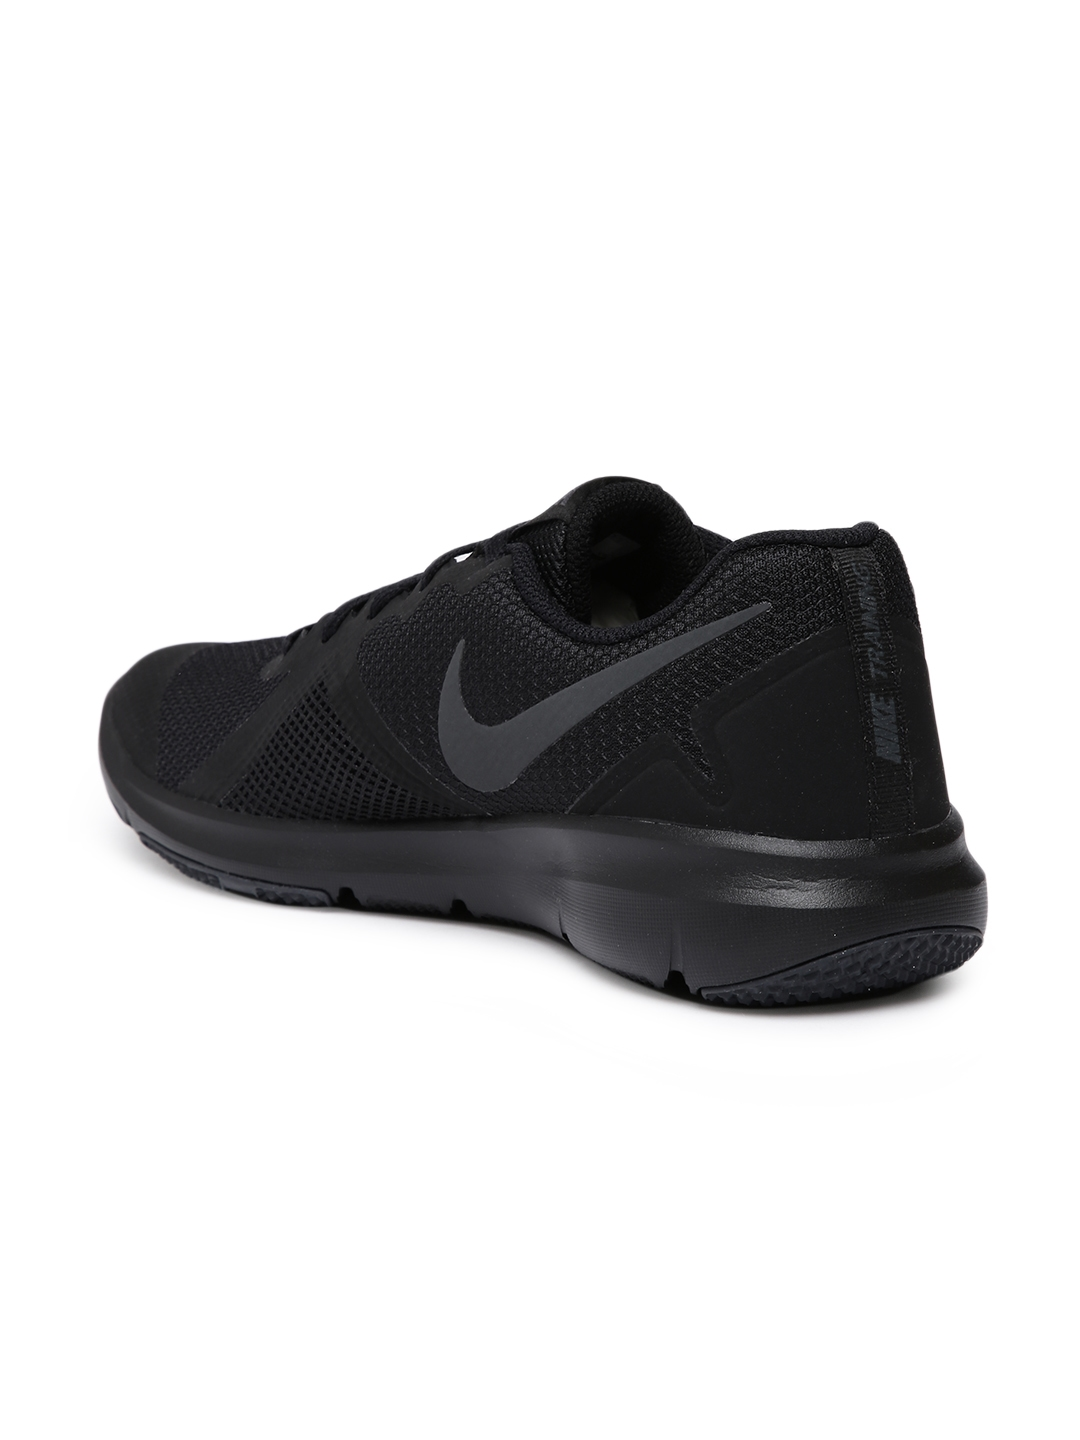 2dc7faac0f8d8 Buy Nike Men Black FLEX CONTROL II Training Shoes - Sports Shoes for ...